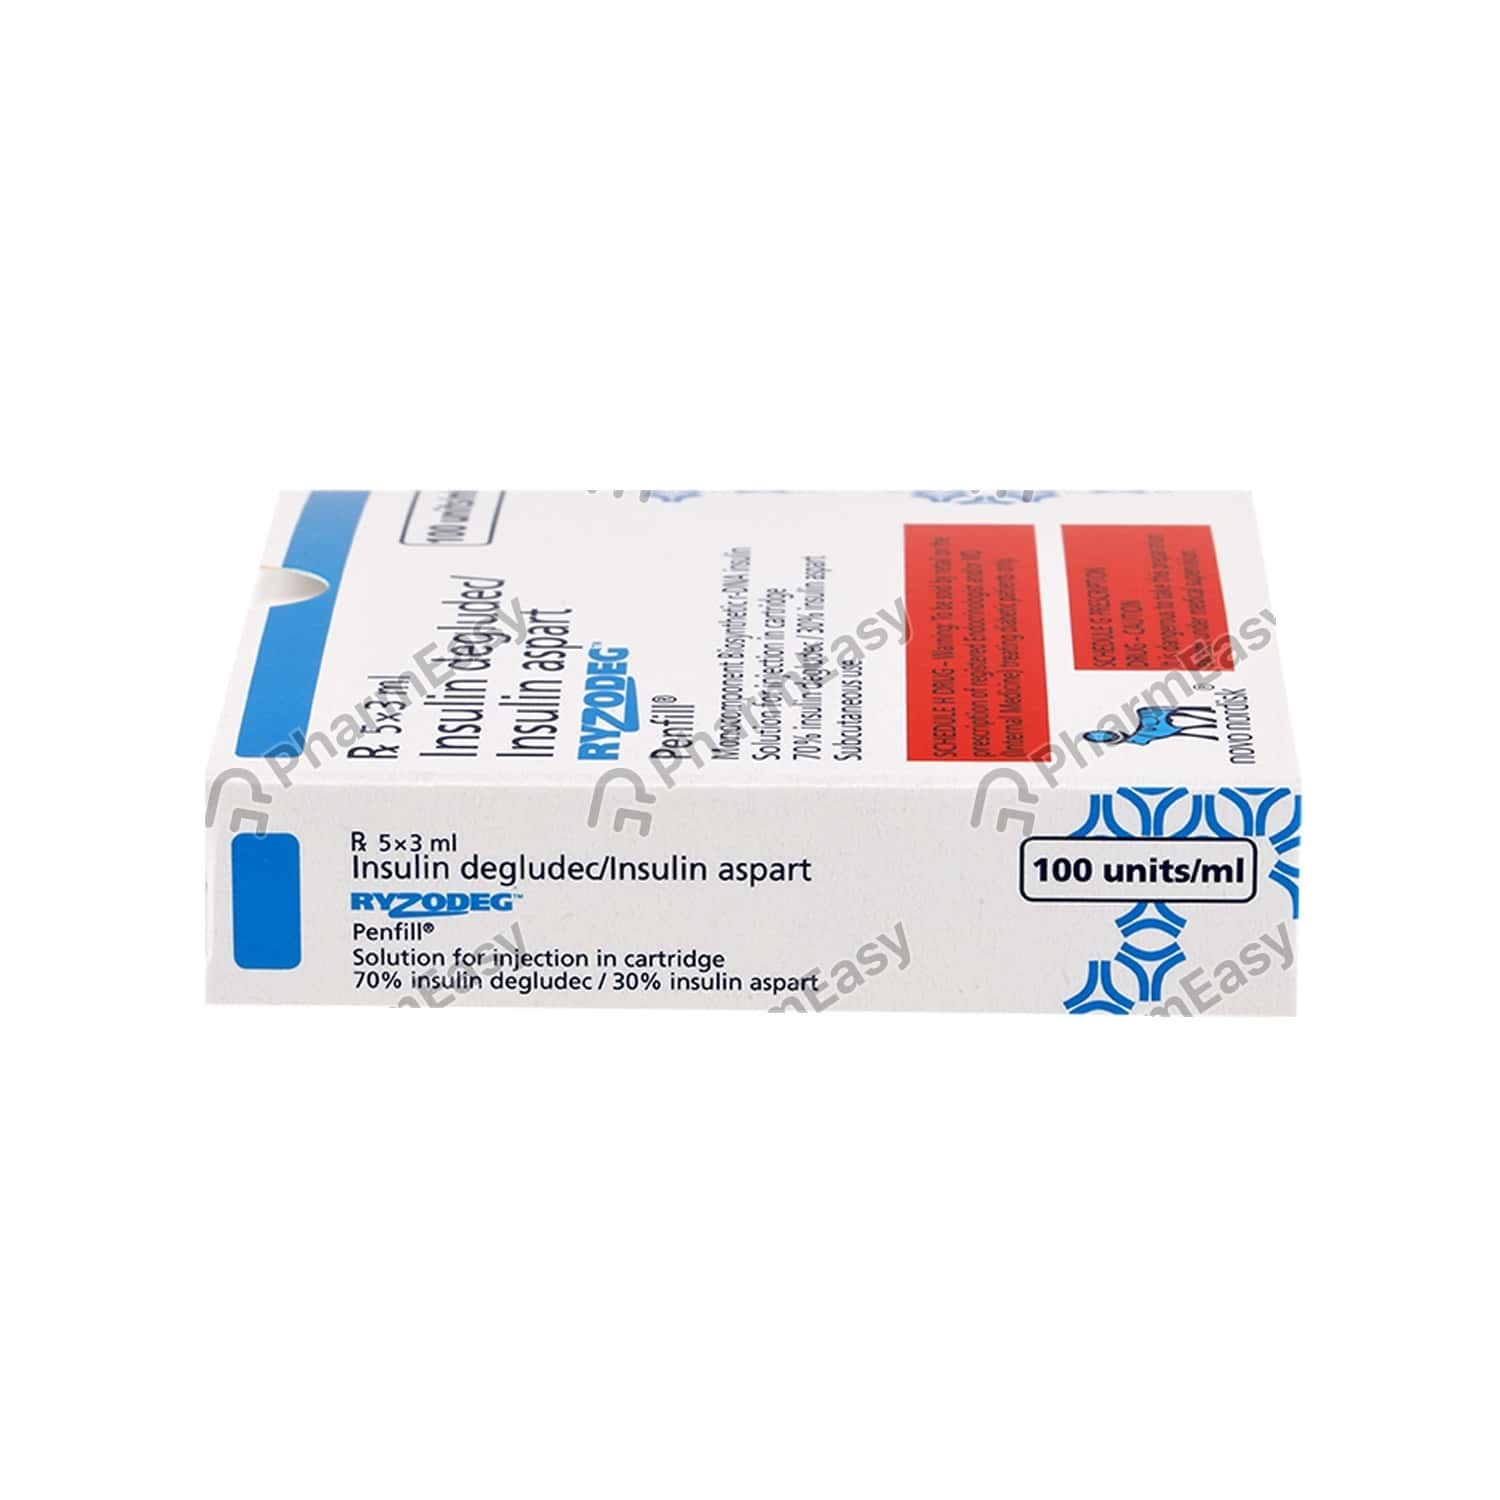 Ryzodeg Penfill 100iu Injection 3ml